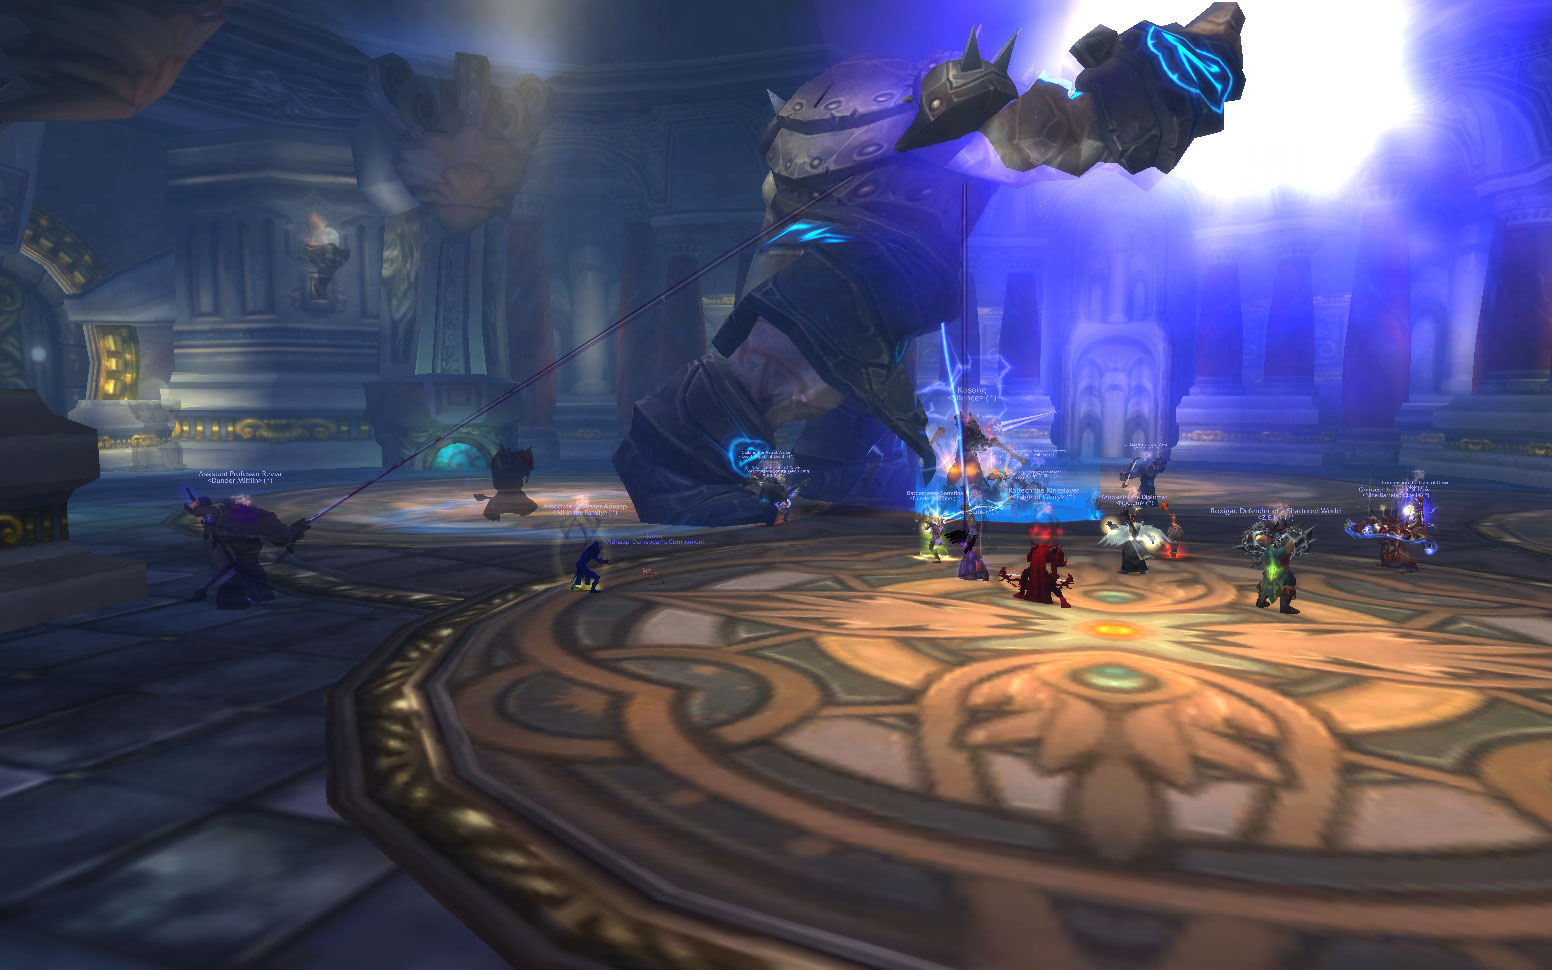 ... of the Glory of the Ulduar Raider (25 player) achievements I needed